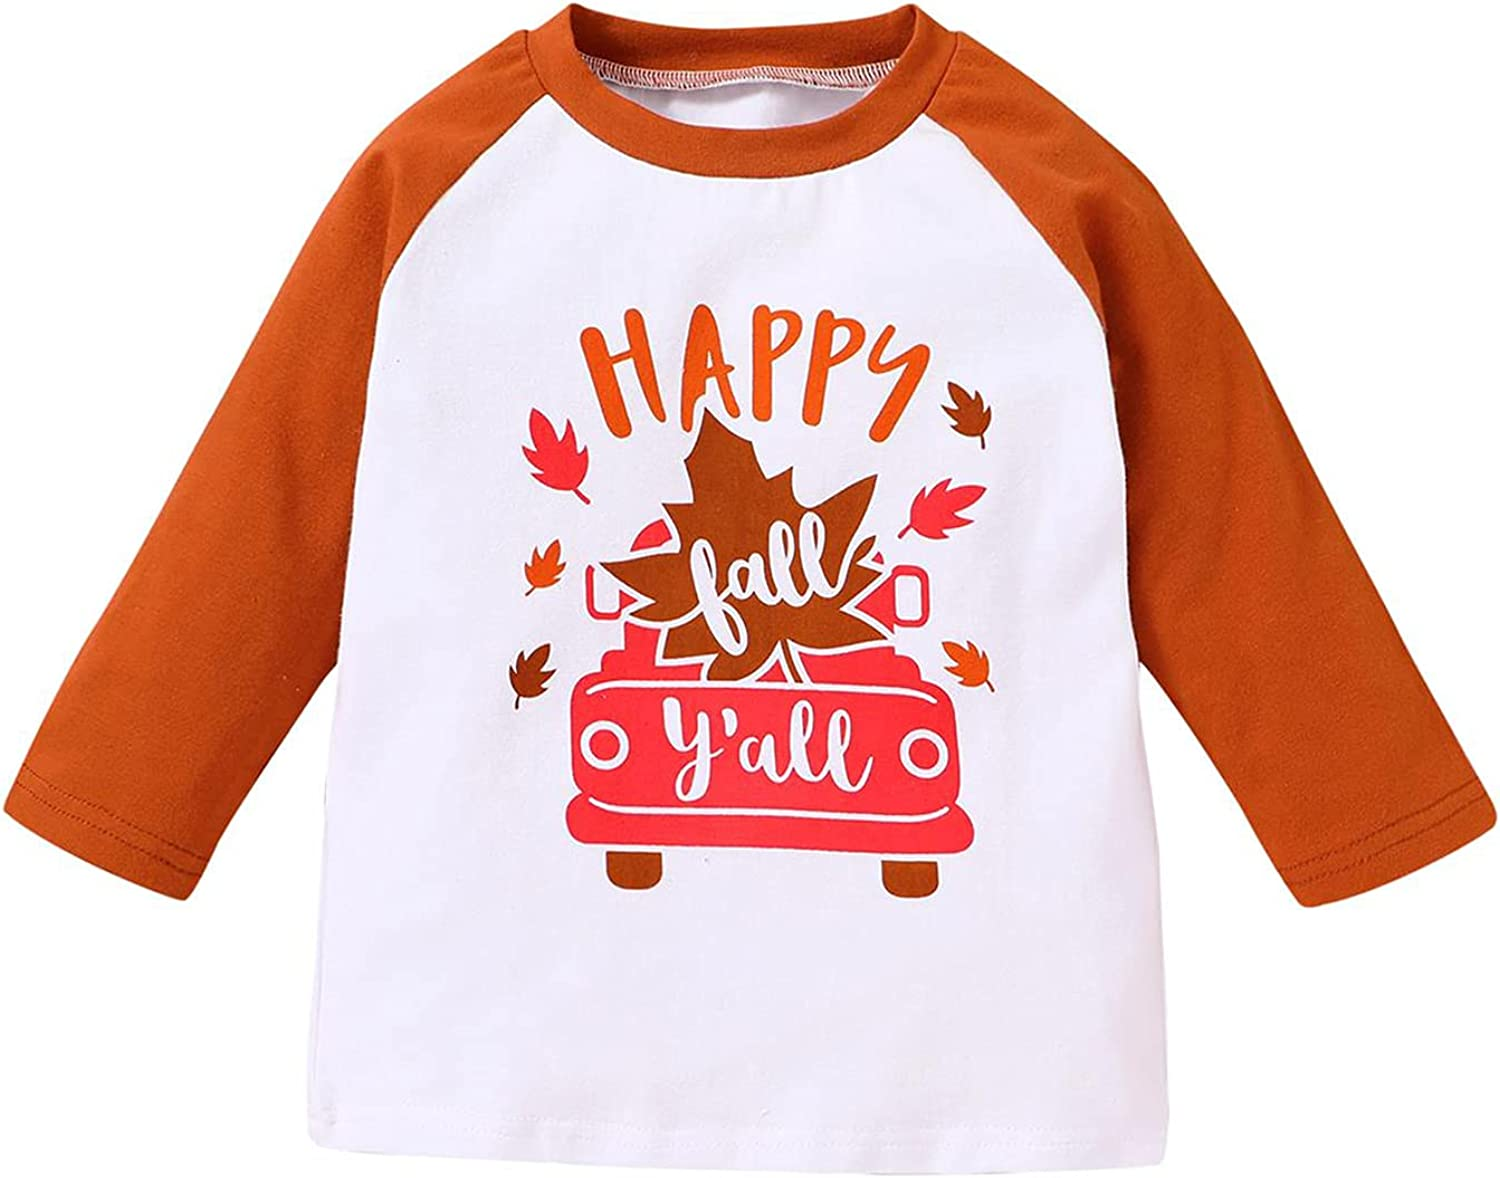 Toddler Baby Boy Fall Clothes Pumpkin Truck Onesie and Shirts Boys Halloween Clothes